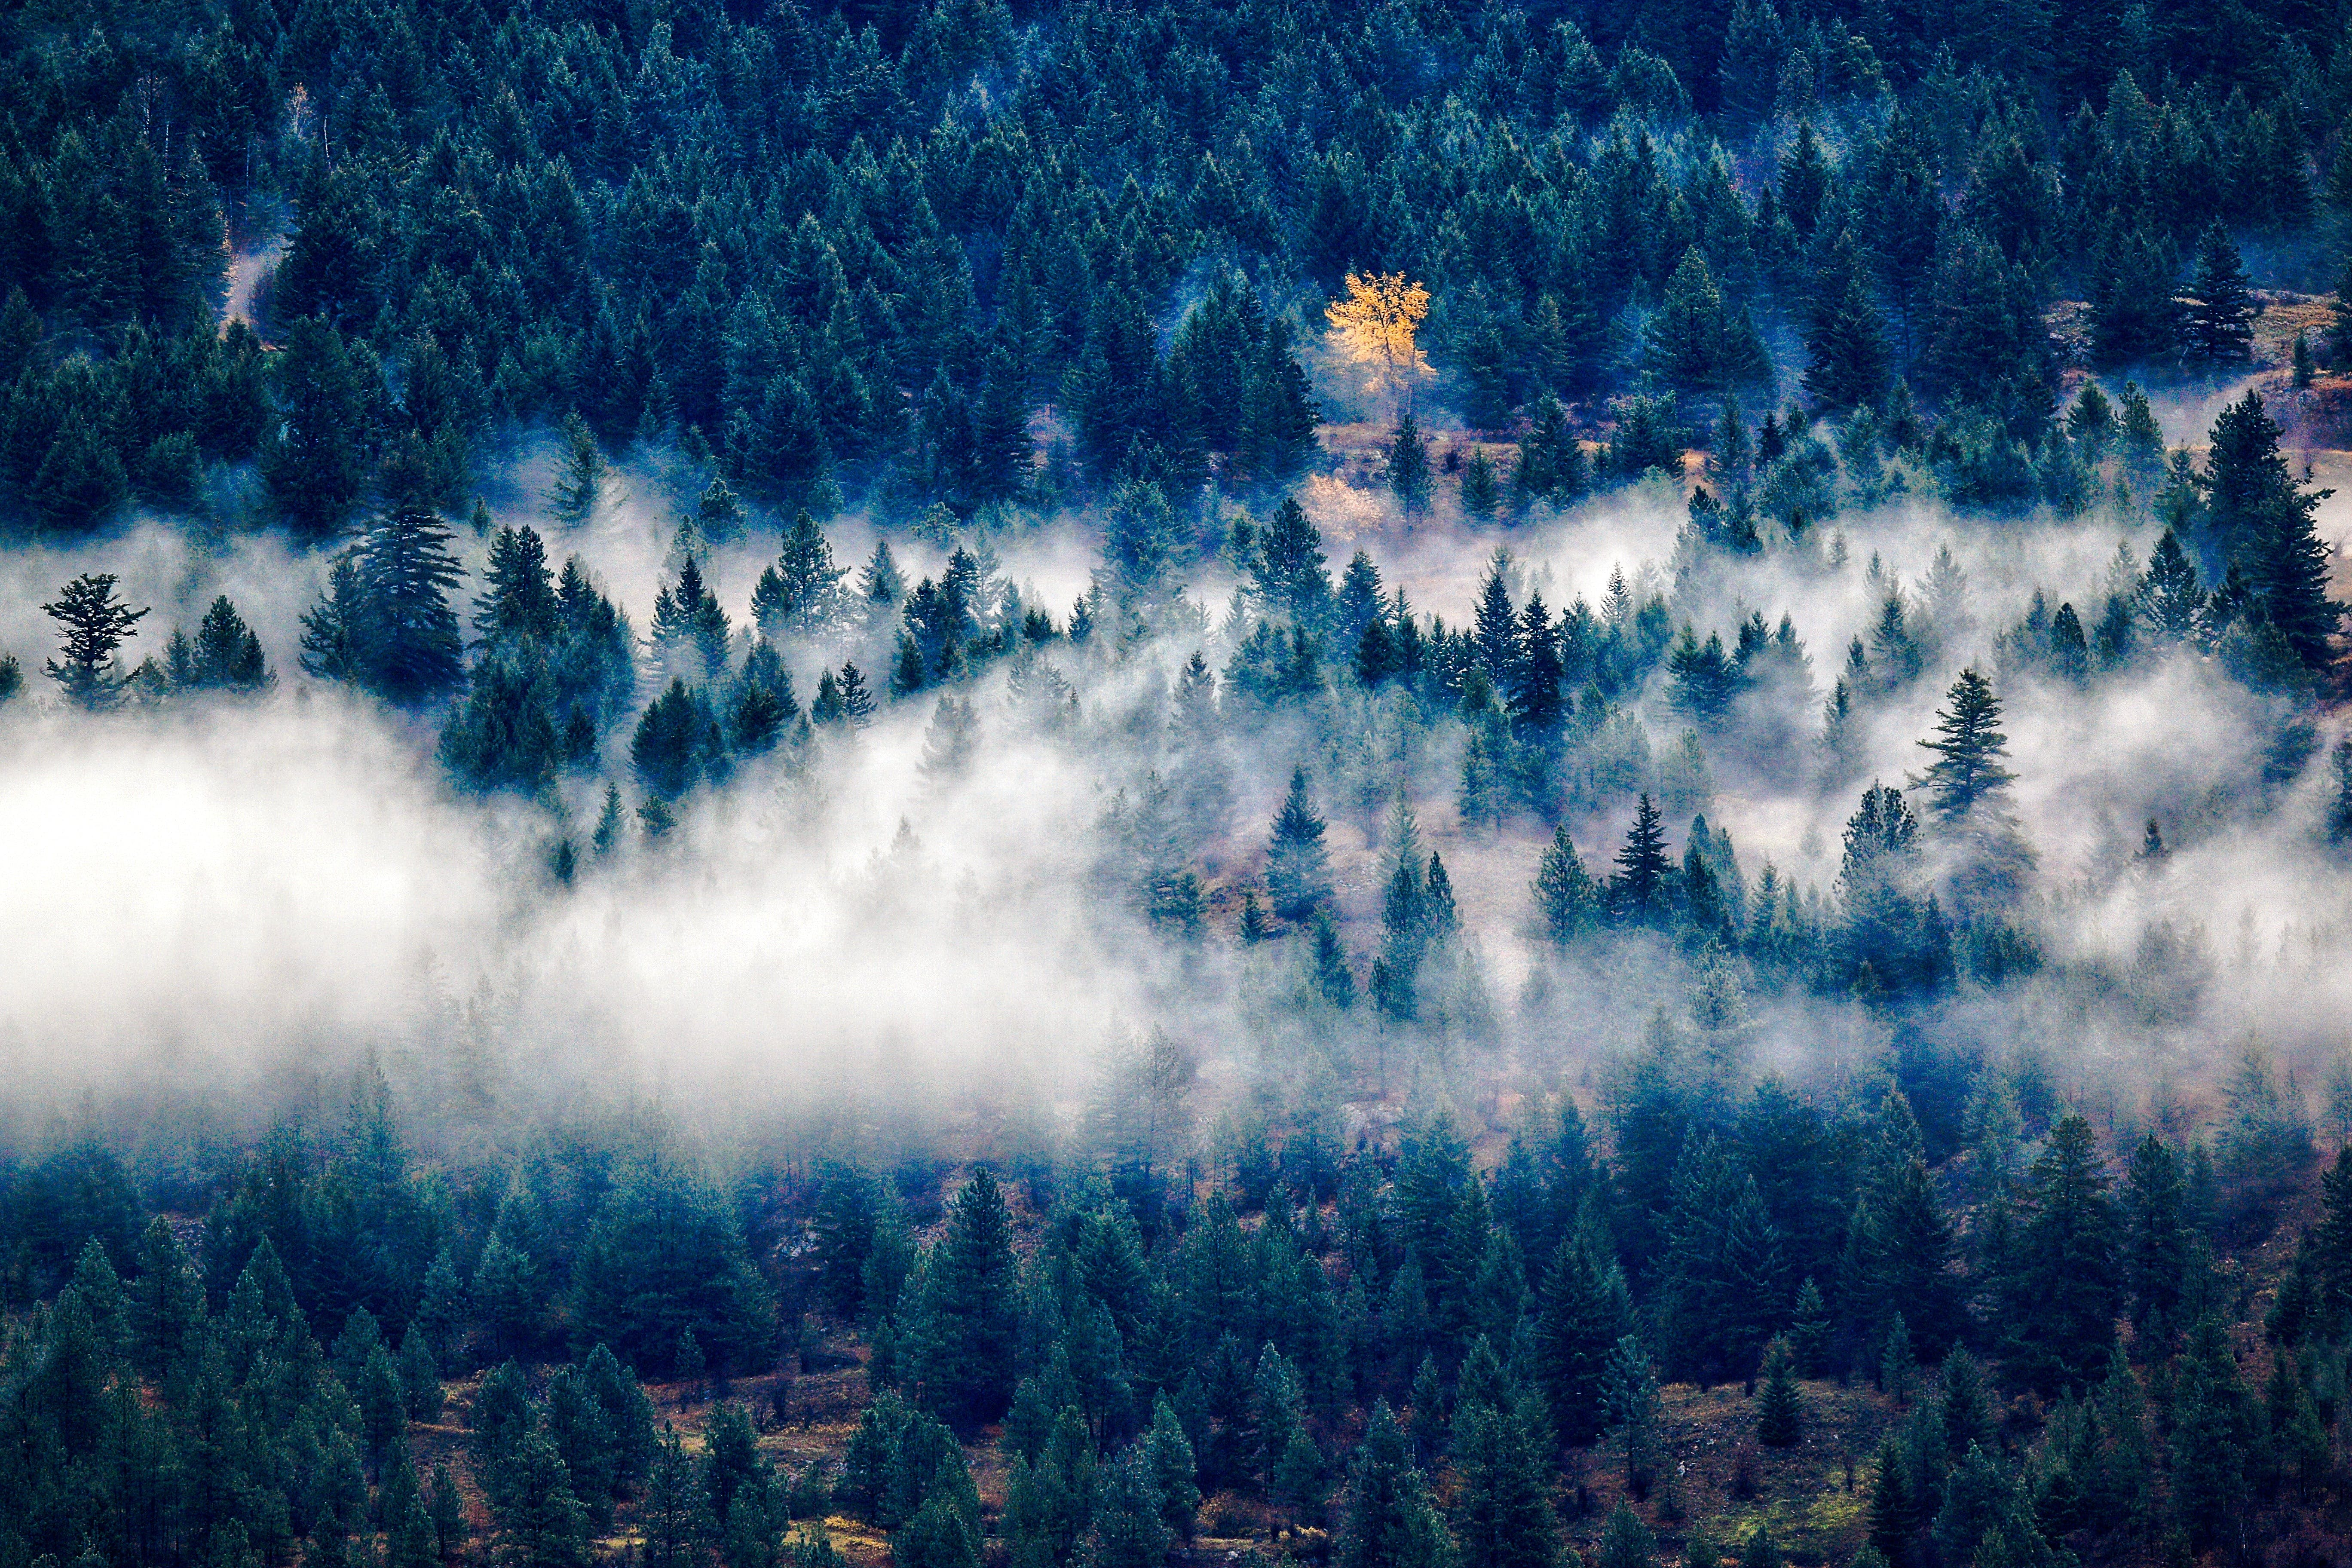 Green Forest Surrounded by Fog